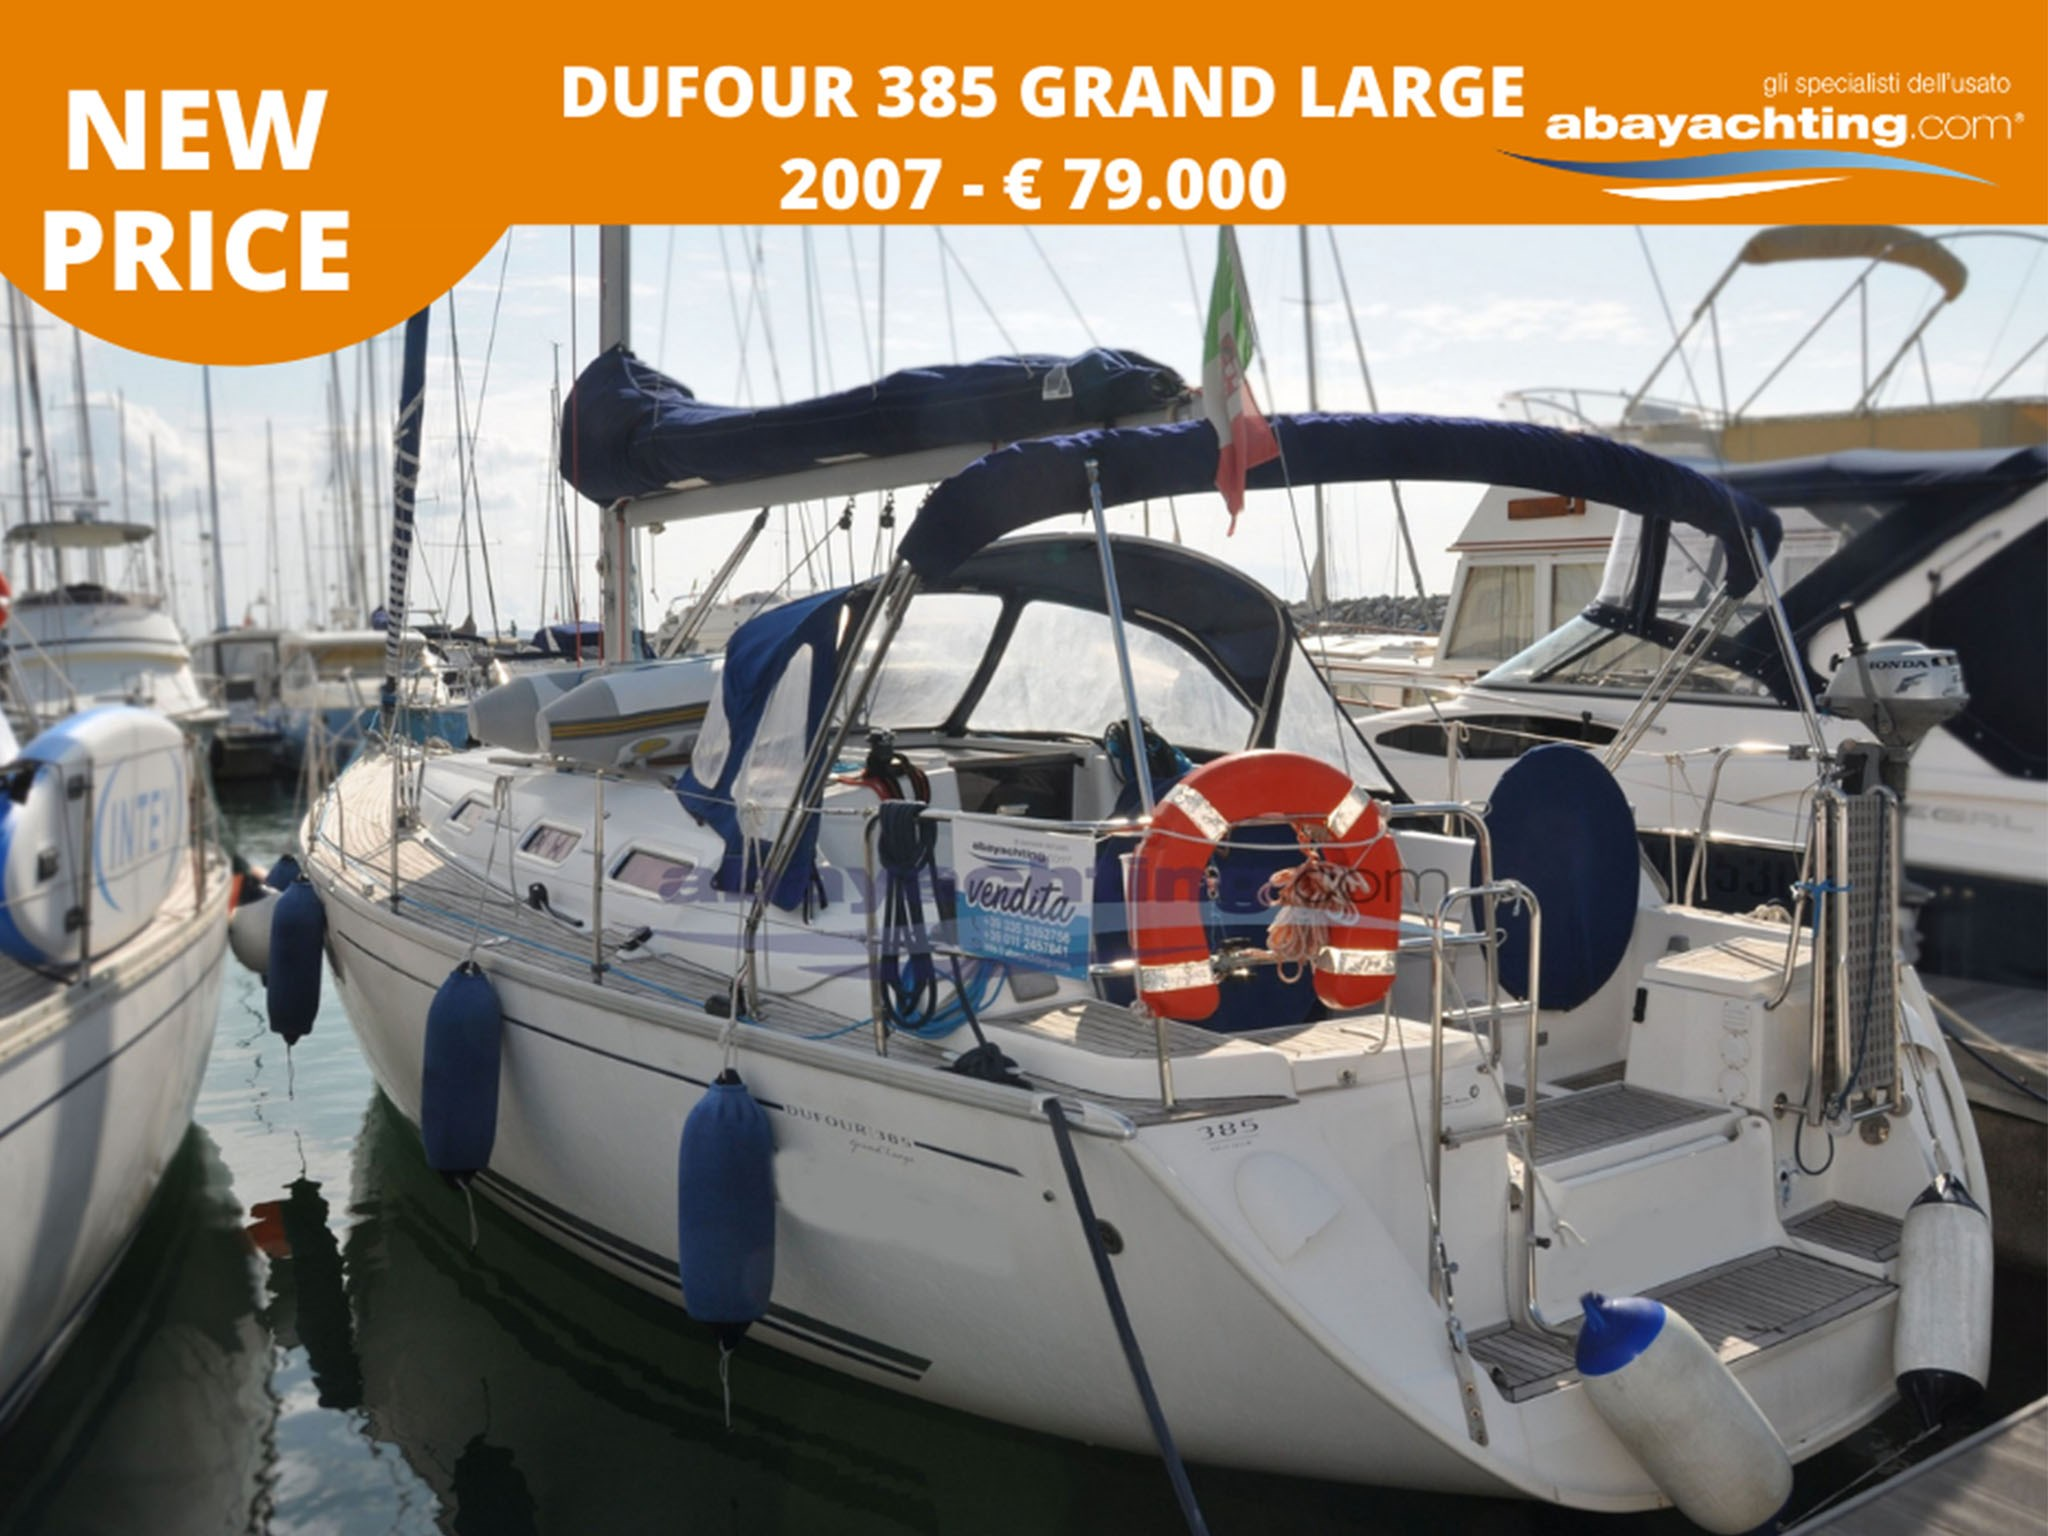 New price Dufour 385 Grand Large